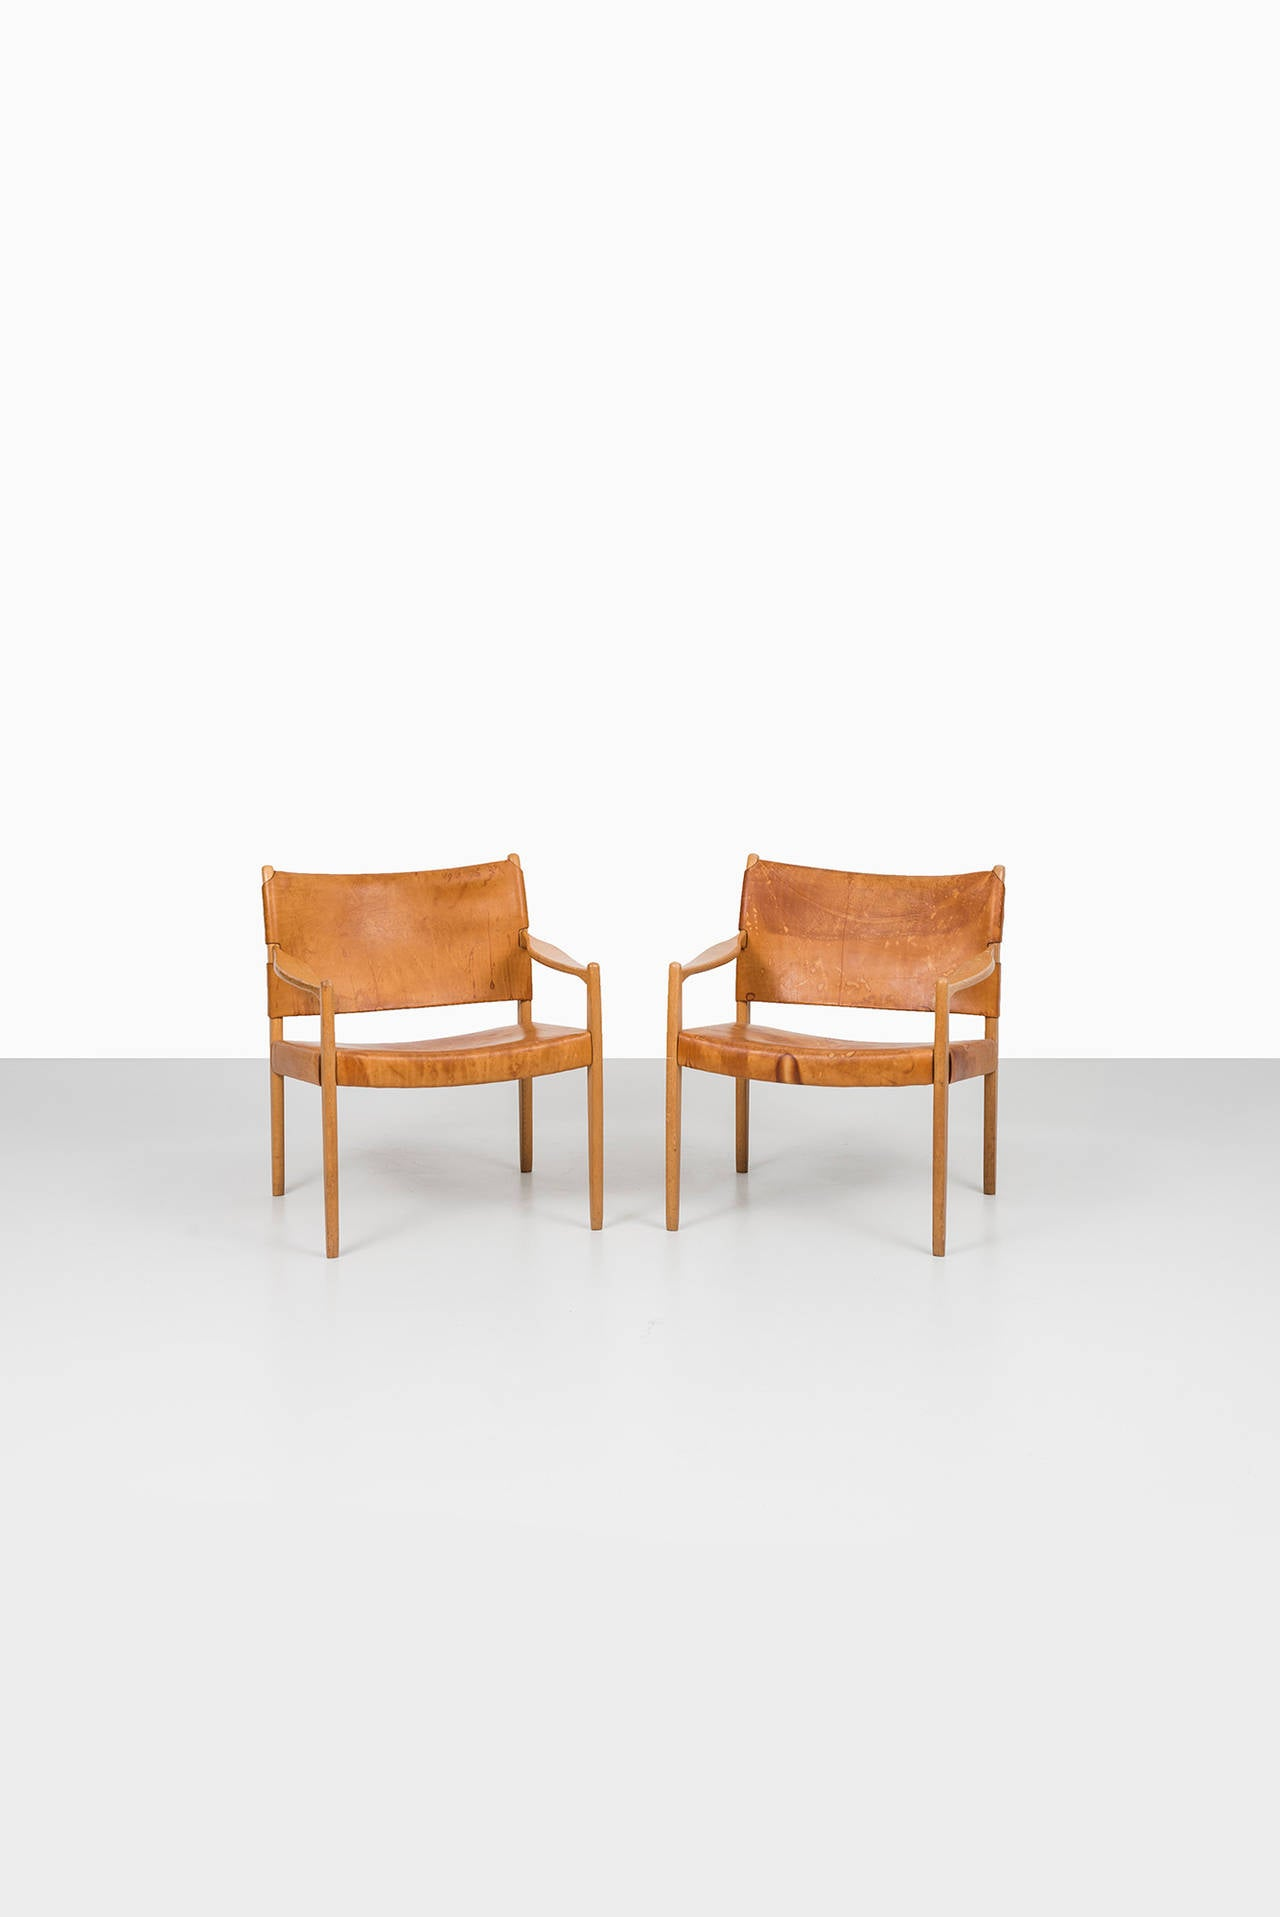 Mid-20th Century Per-Olof Scotte easy chairs model Premiär produced in Sweden